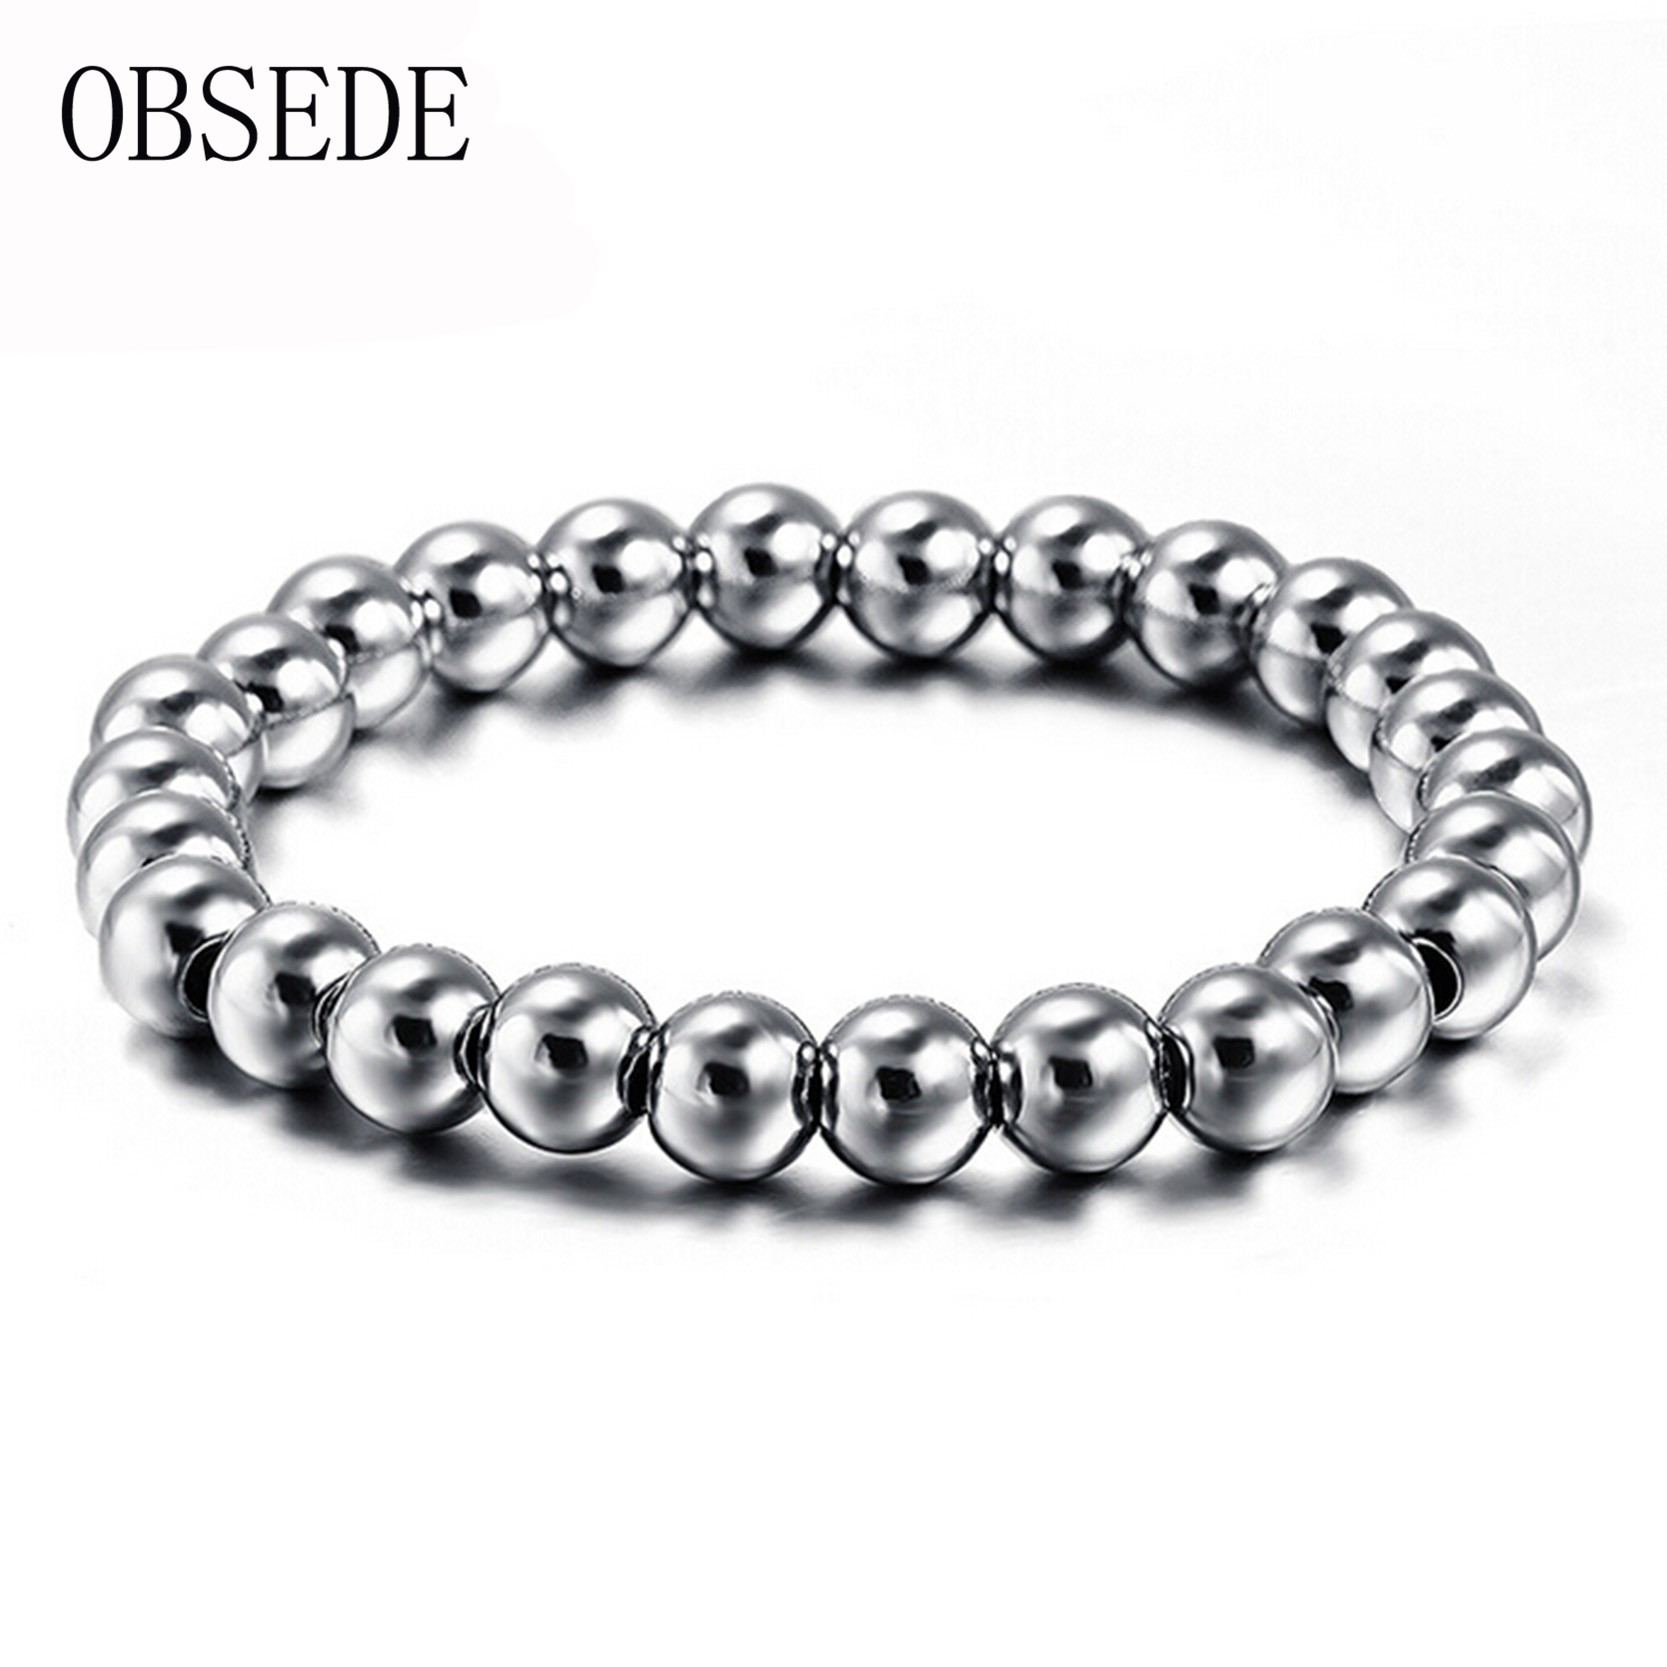 Obsede Punk Charm Beads Bracelet For Men Silver Color Stainless Steel  Bracelets Fashion Wristband Unique Jewelry